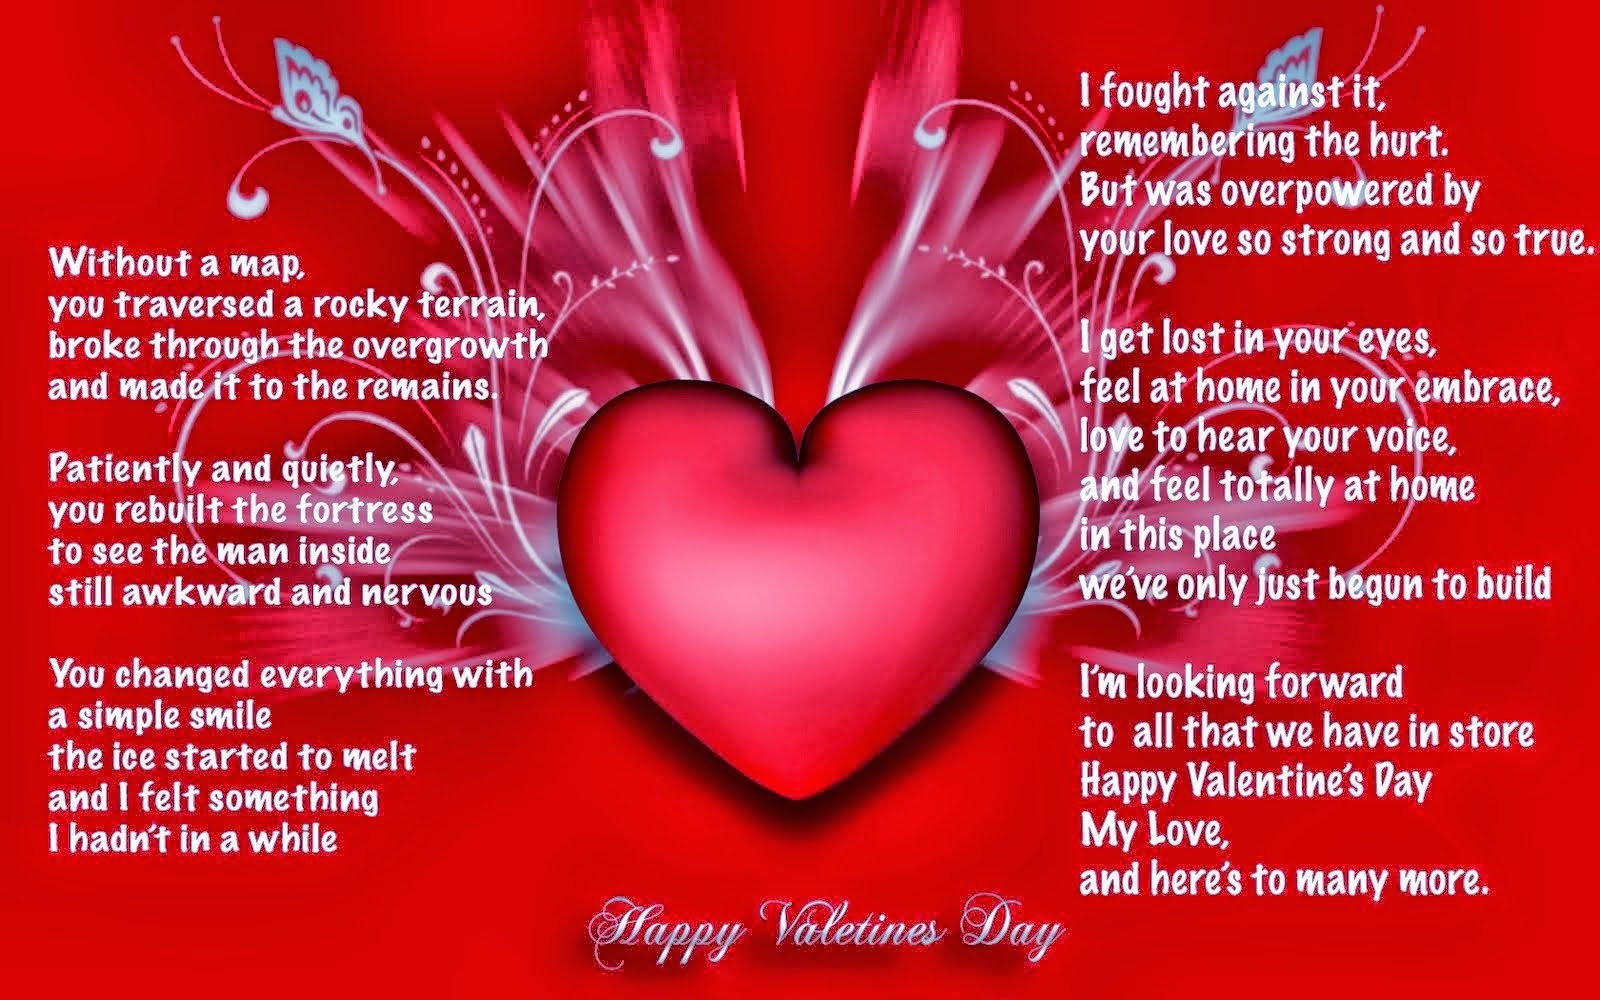 happy valentines day 2016 greeting cards, Ideas